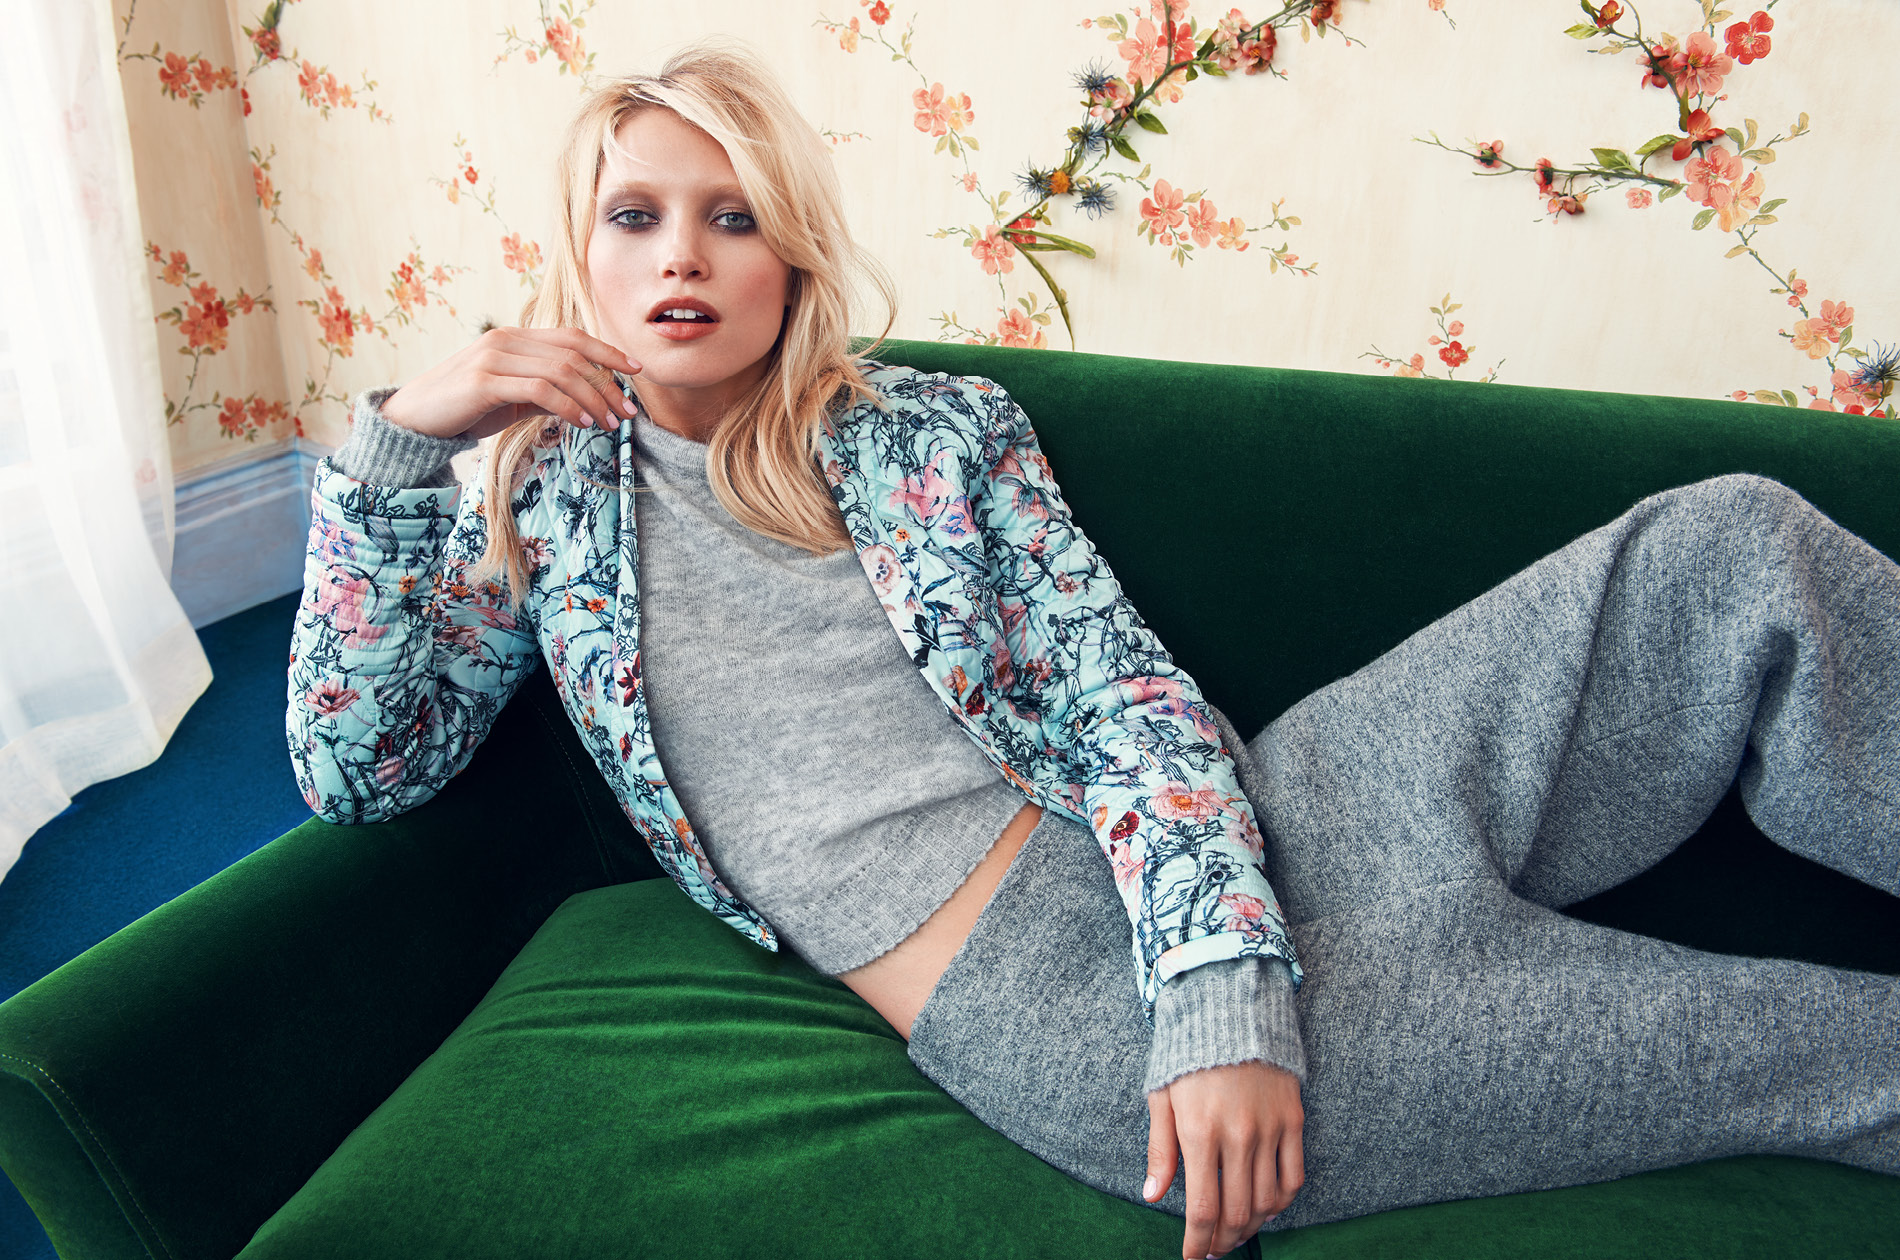 Model posing for a fashion campaign, wearing a floral coat.